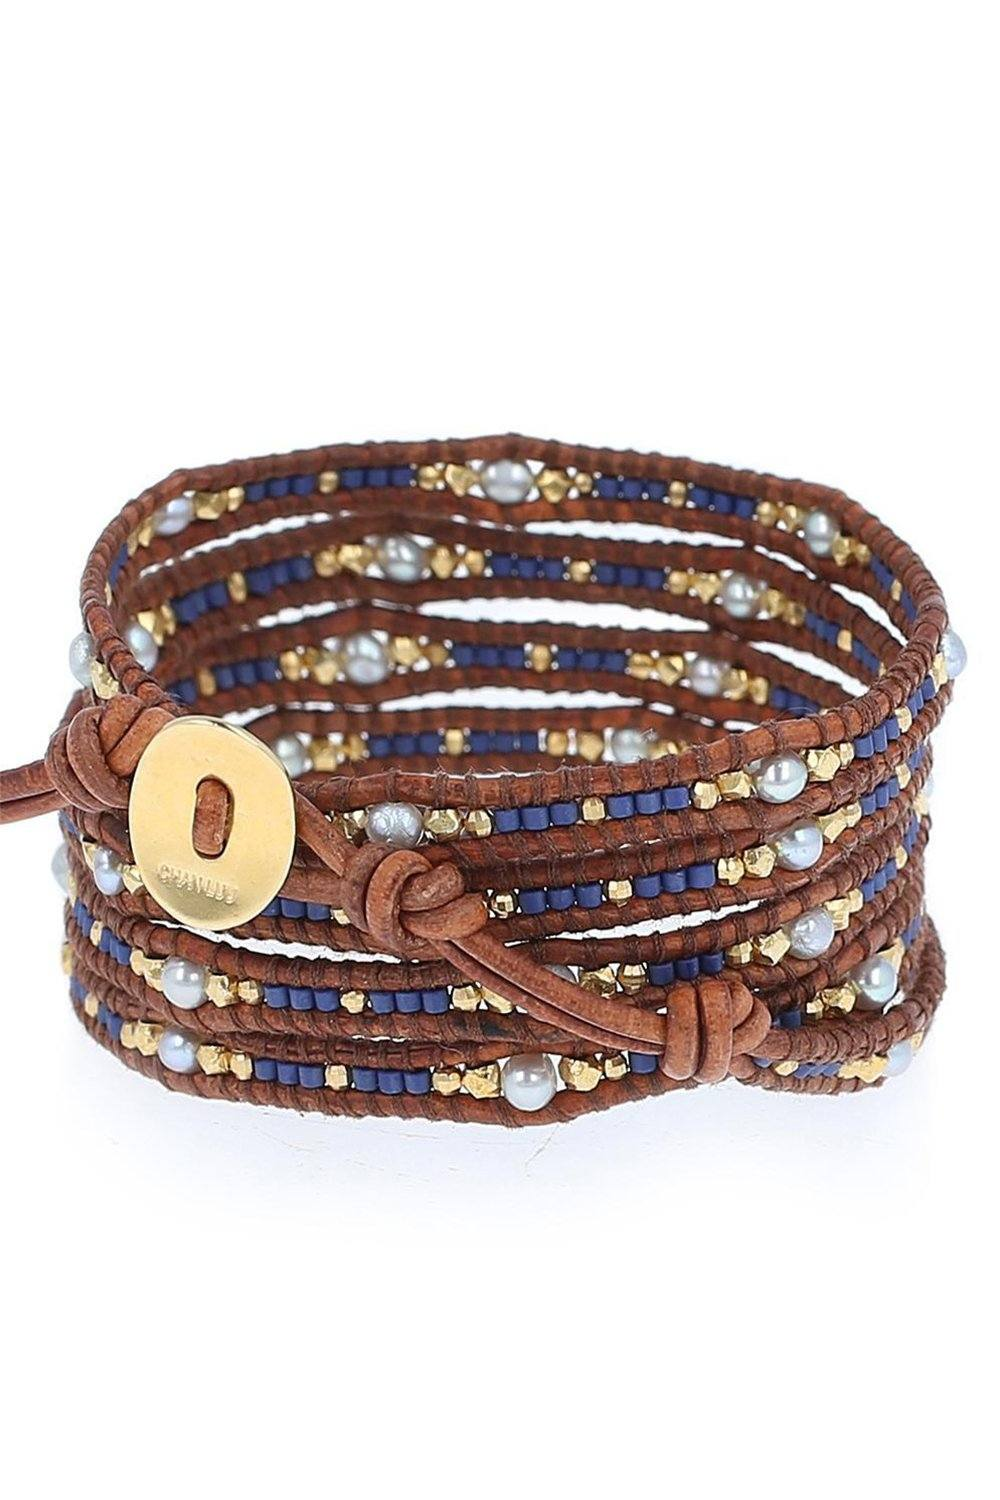 Blue Mix Seed Bead Wrap Bracelet on Natural Brown Leather